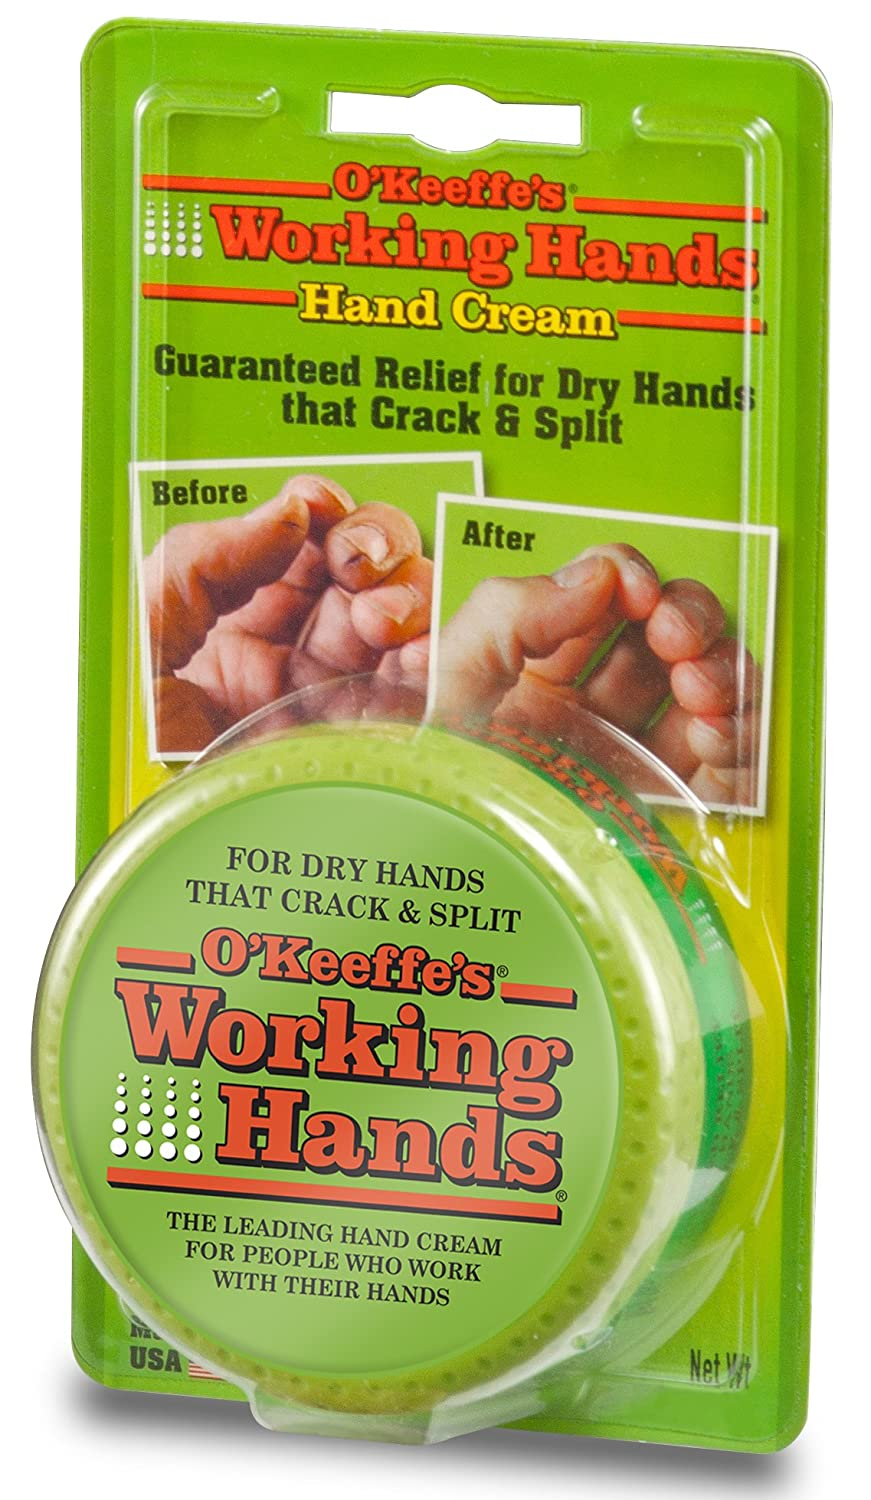 Hand Cream For Dry Hands Working Hands Hand Cream